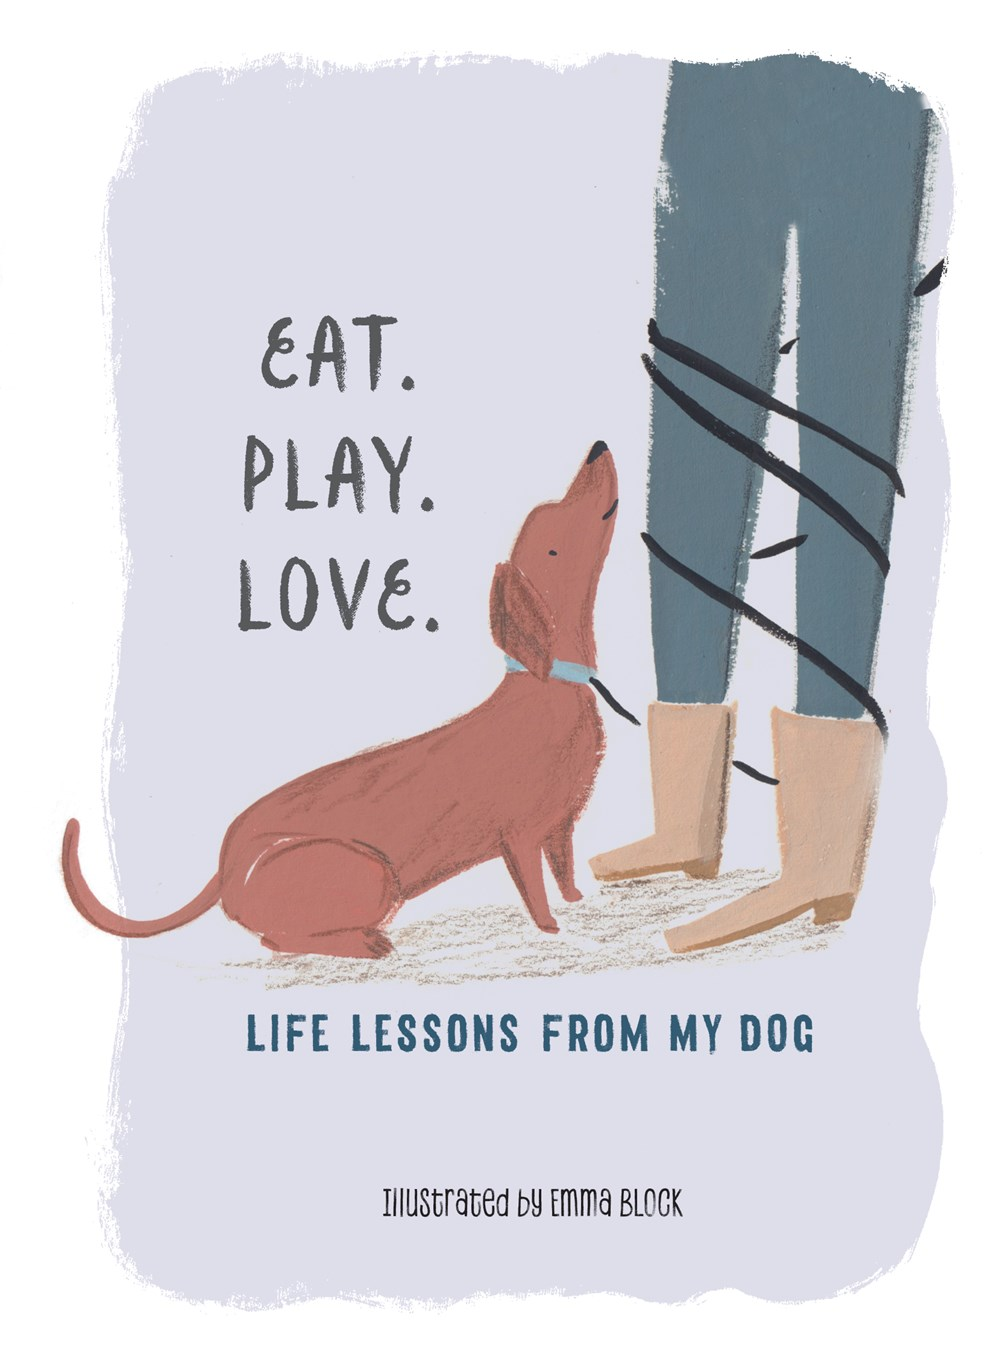 """Eat. Play. Love.Life Lessons From My Dog - Whoever coined the phrase """"a dog's life"""" should've tried the lifestyle first! What's not to love when every meal is a feast, every errand is an adventure, and every day, you wake up to see your very favorite person?Let artist Emma Block's adorable pooches win you over with 100 heartwarming life lessons, like:- You are never too old to play.- Don't be afraid to get messy.- Overcome fear with loveRead more here!"""